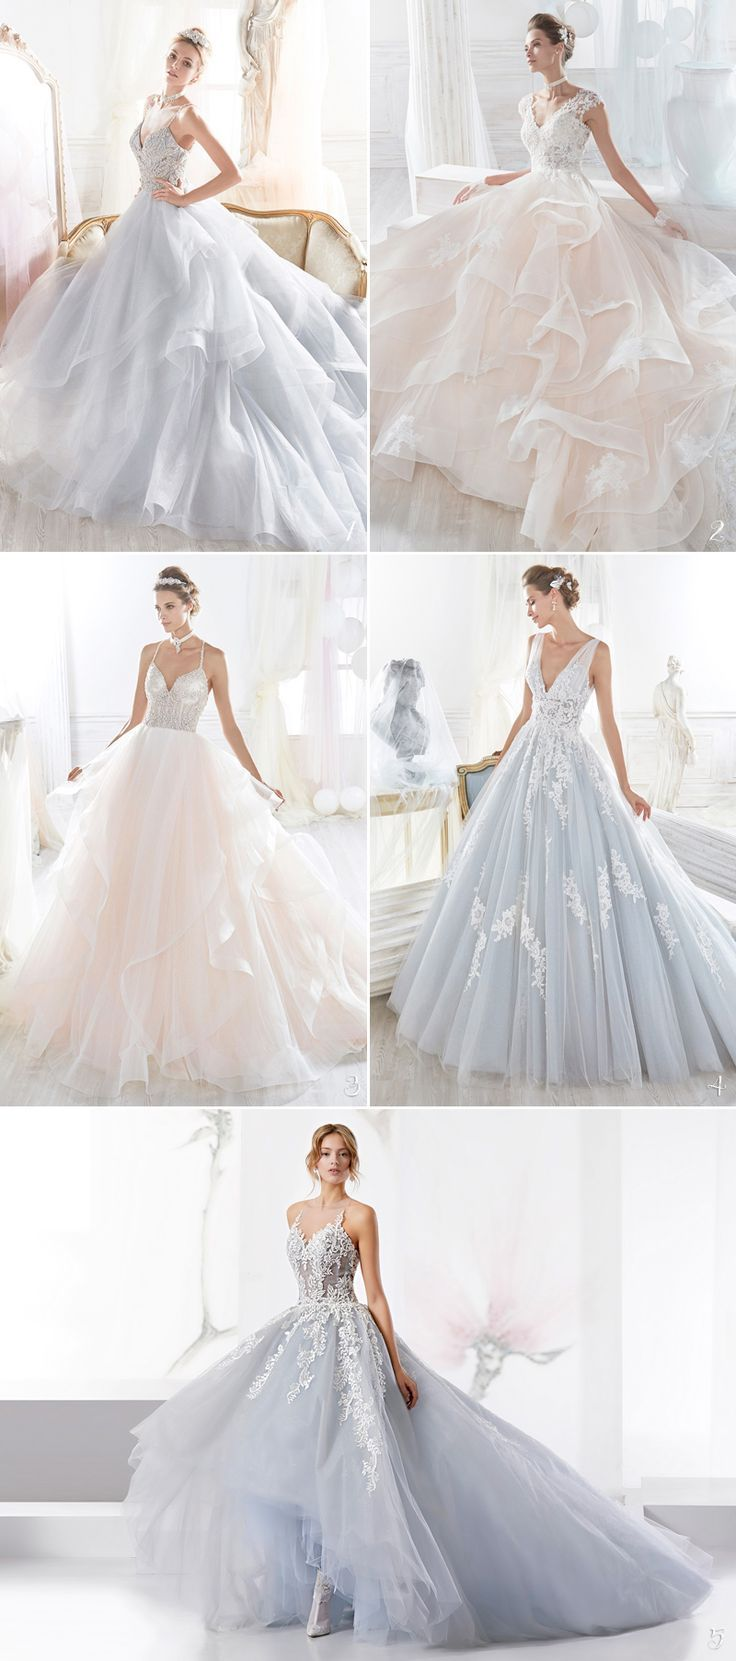 Thereus absolutely nothing like a fluffy ball gown to make a bride